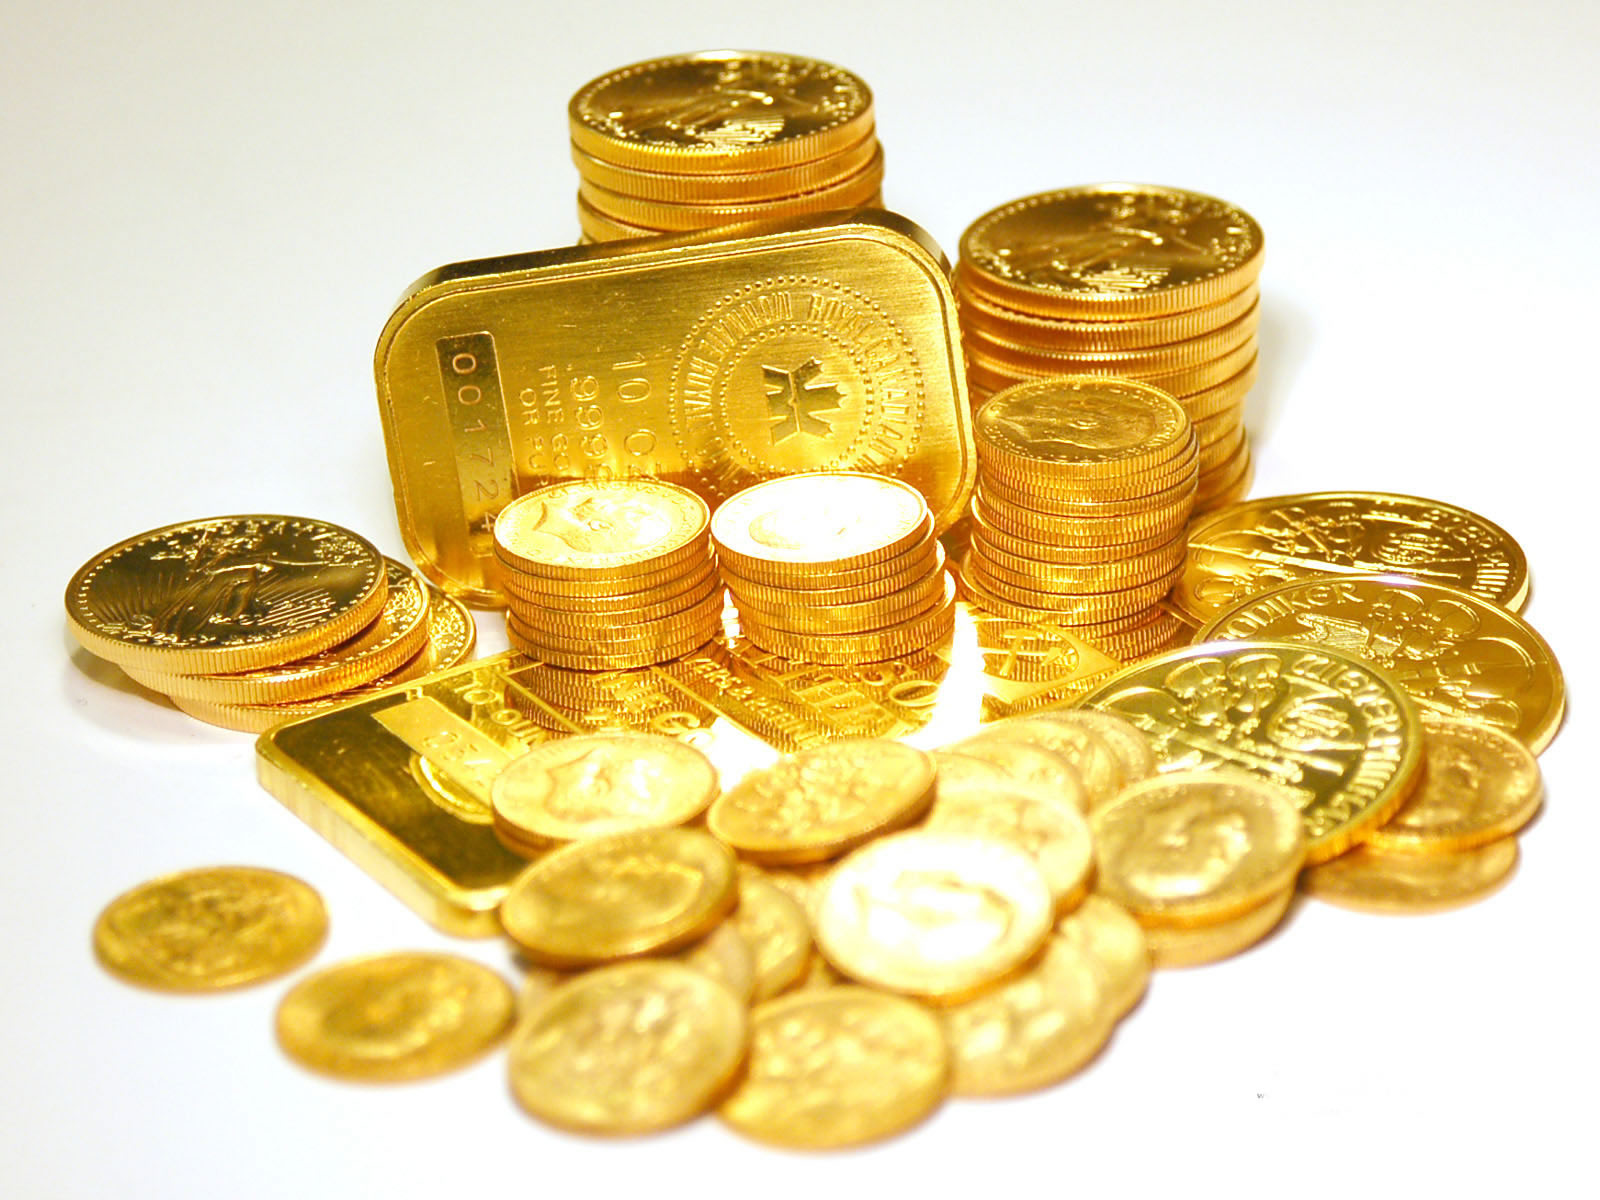 Clipart ancient gold and silver image Free Gold Coins, Download Free Clip Art, Free Clip Art on Clipart ... image